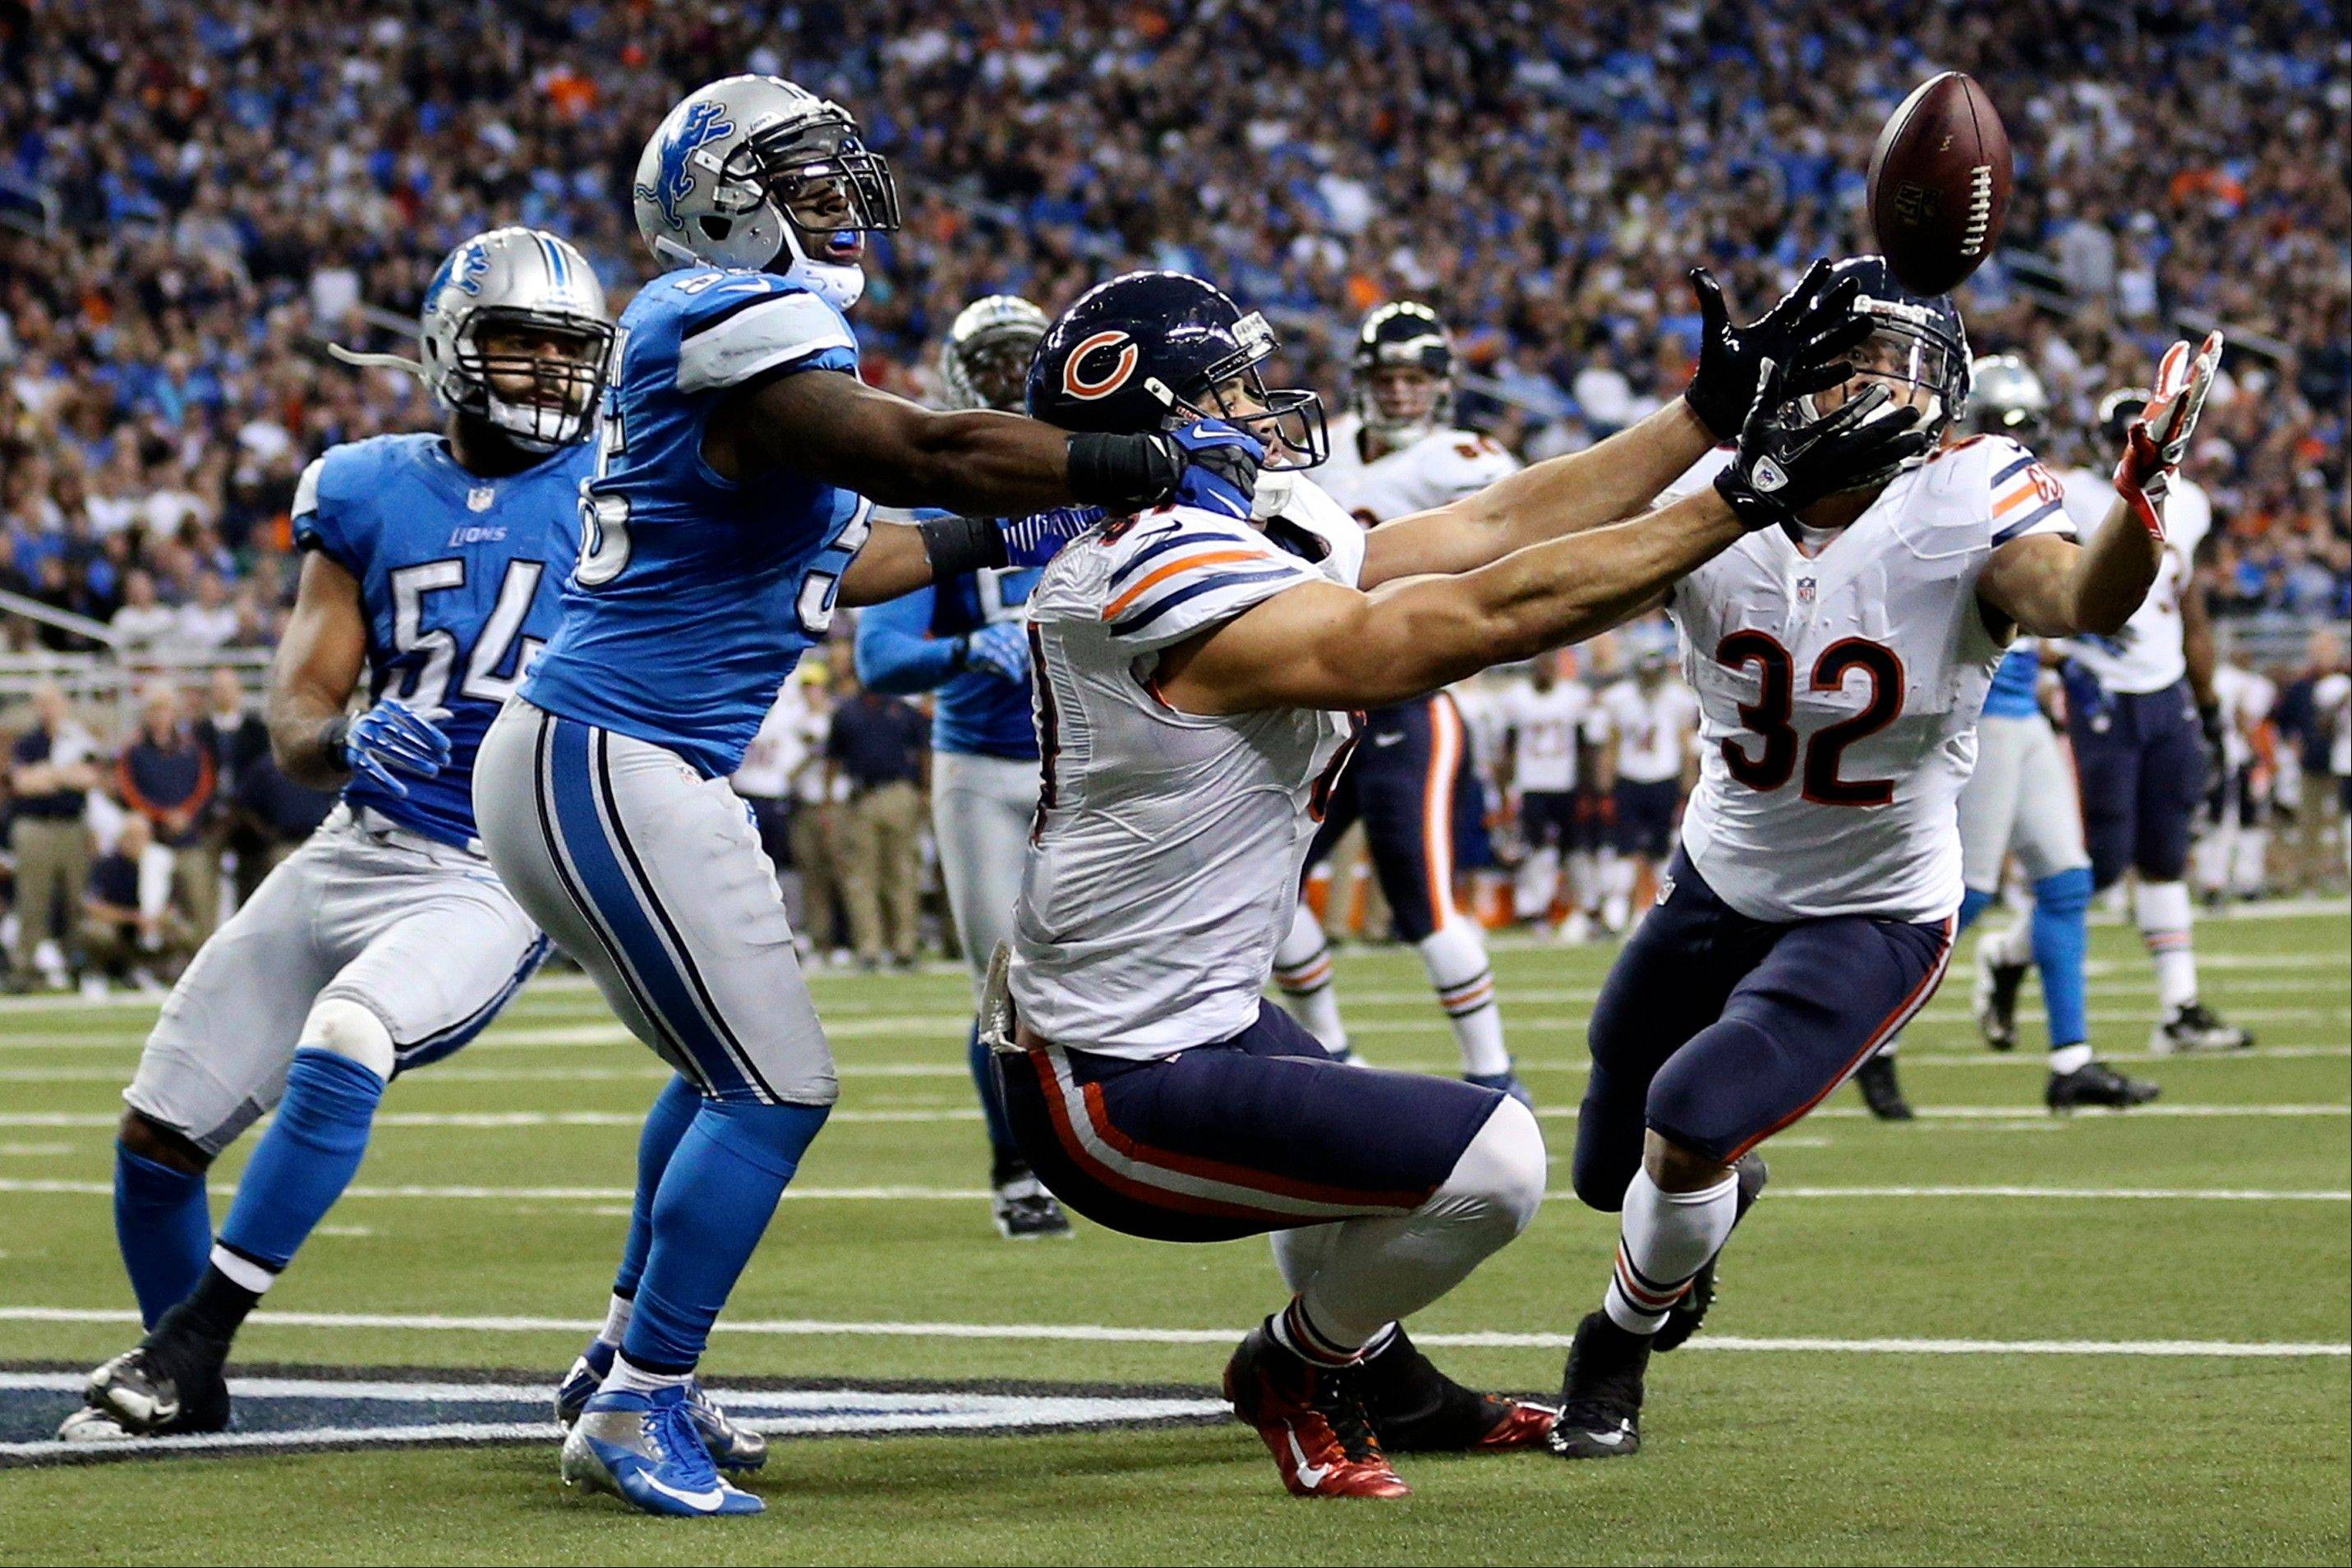 Detroit Lions middle linebacker Stephen Tulloch, left, breaks up a pass intended for Chicago Bears tight end Kellen Davis, center, during the fourth quarter. The Bears won 26-24.